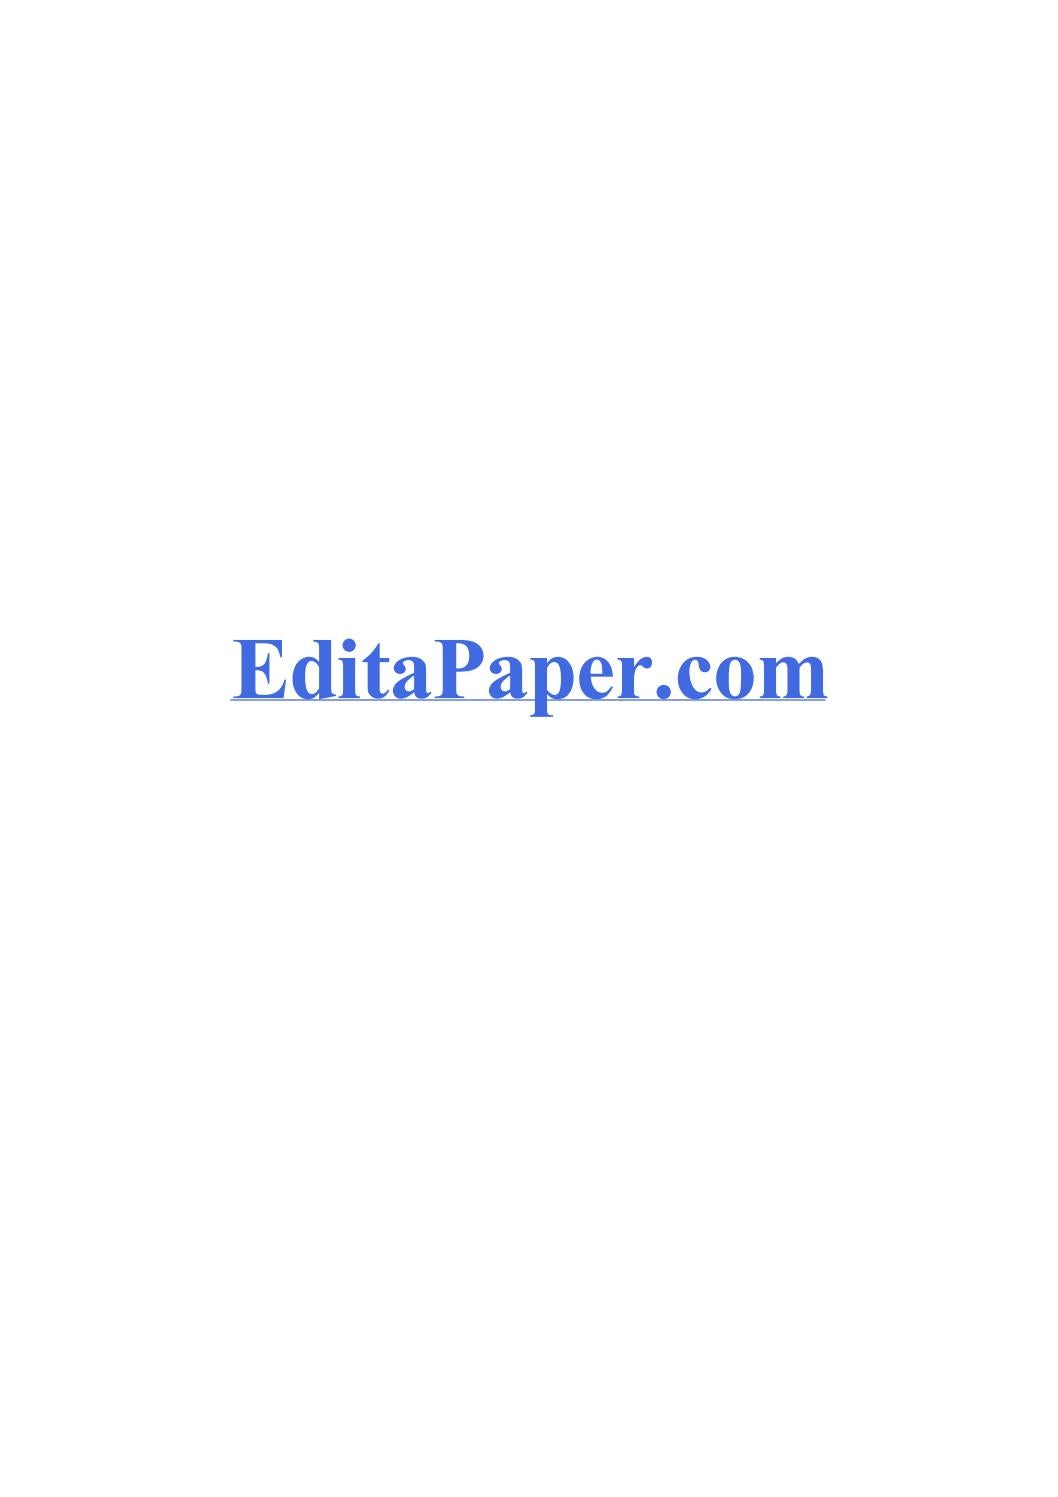 Buy articles most recently released reports